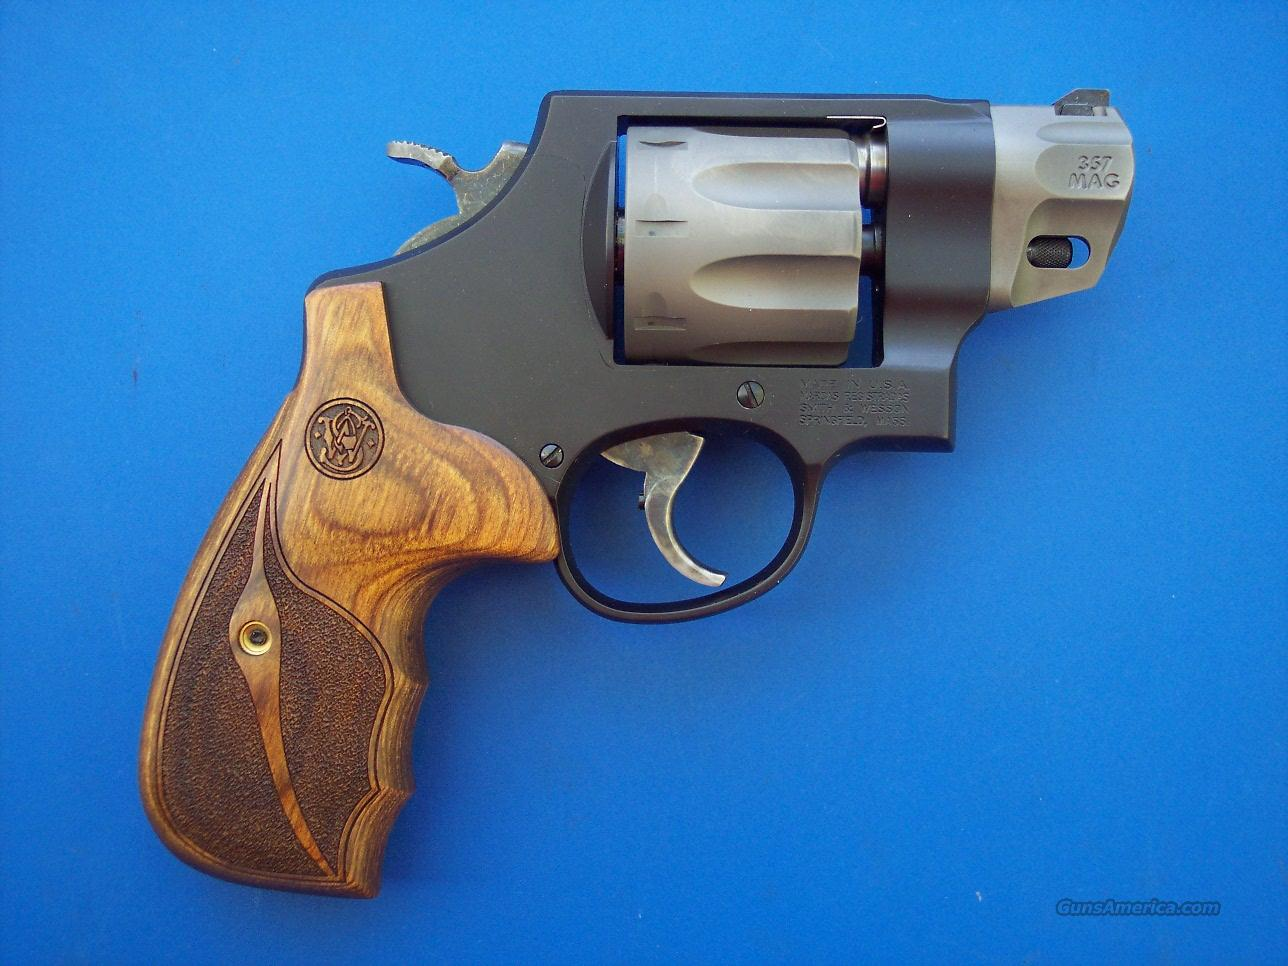 Smith & Wesson 327 Performance Center 357 *NEW*  Guns > Pistols > Smith & Wesson Revolvers > Performance Center